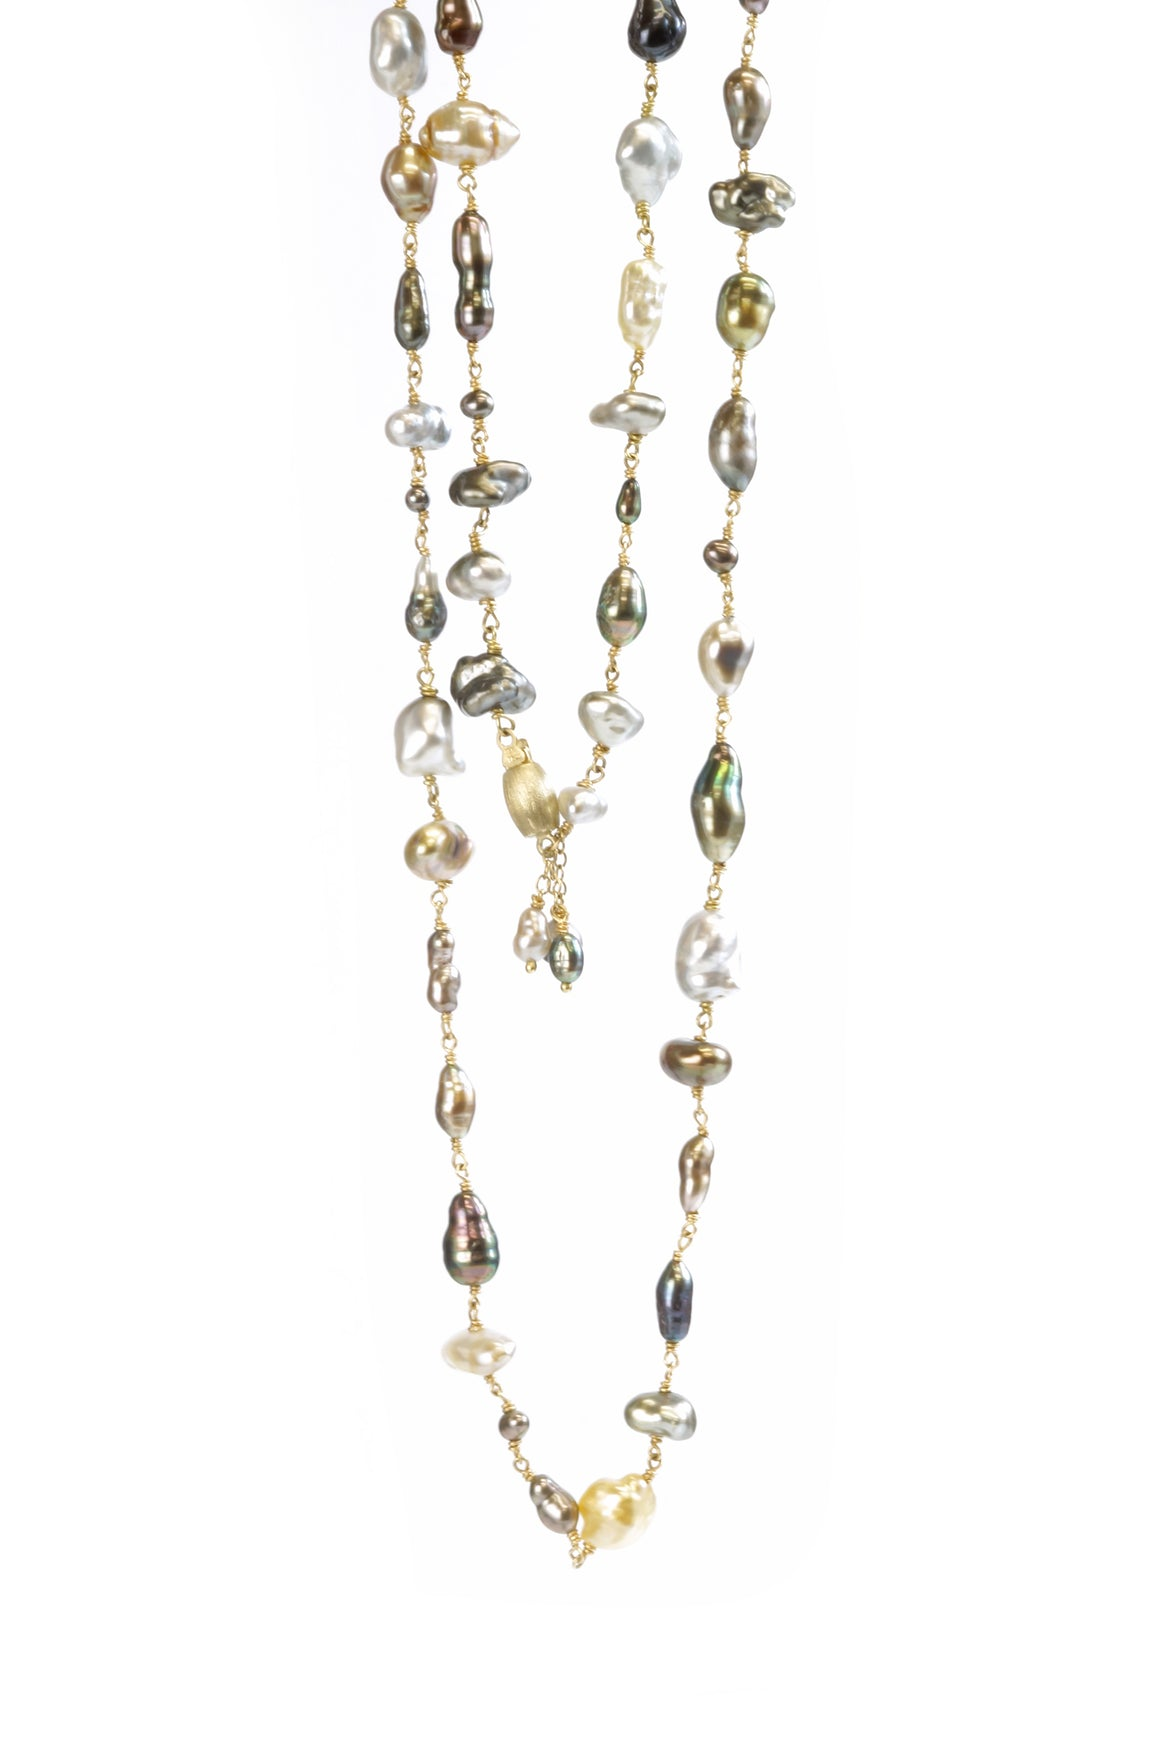 Keshi pearl necklace - Lesley Ann Jewels